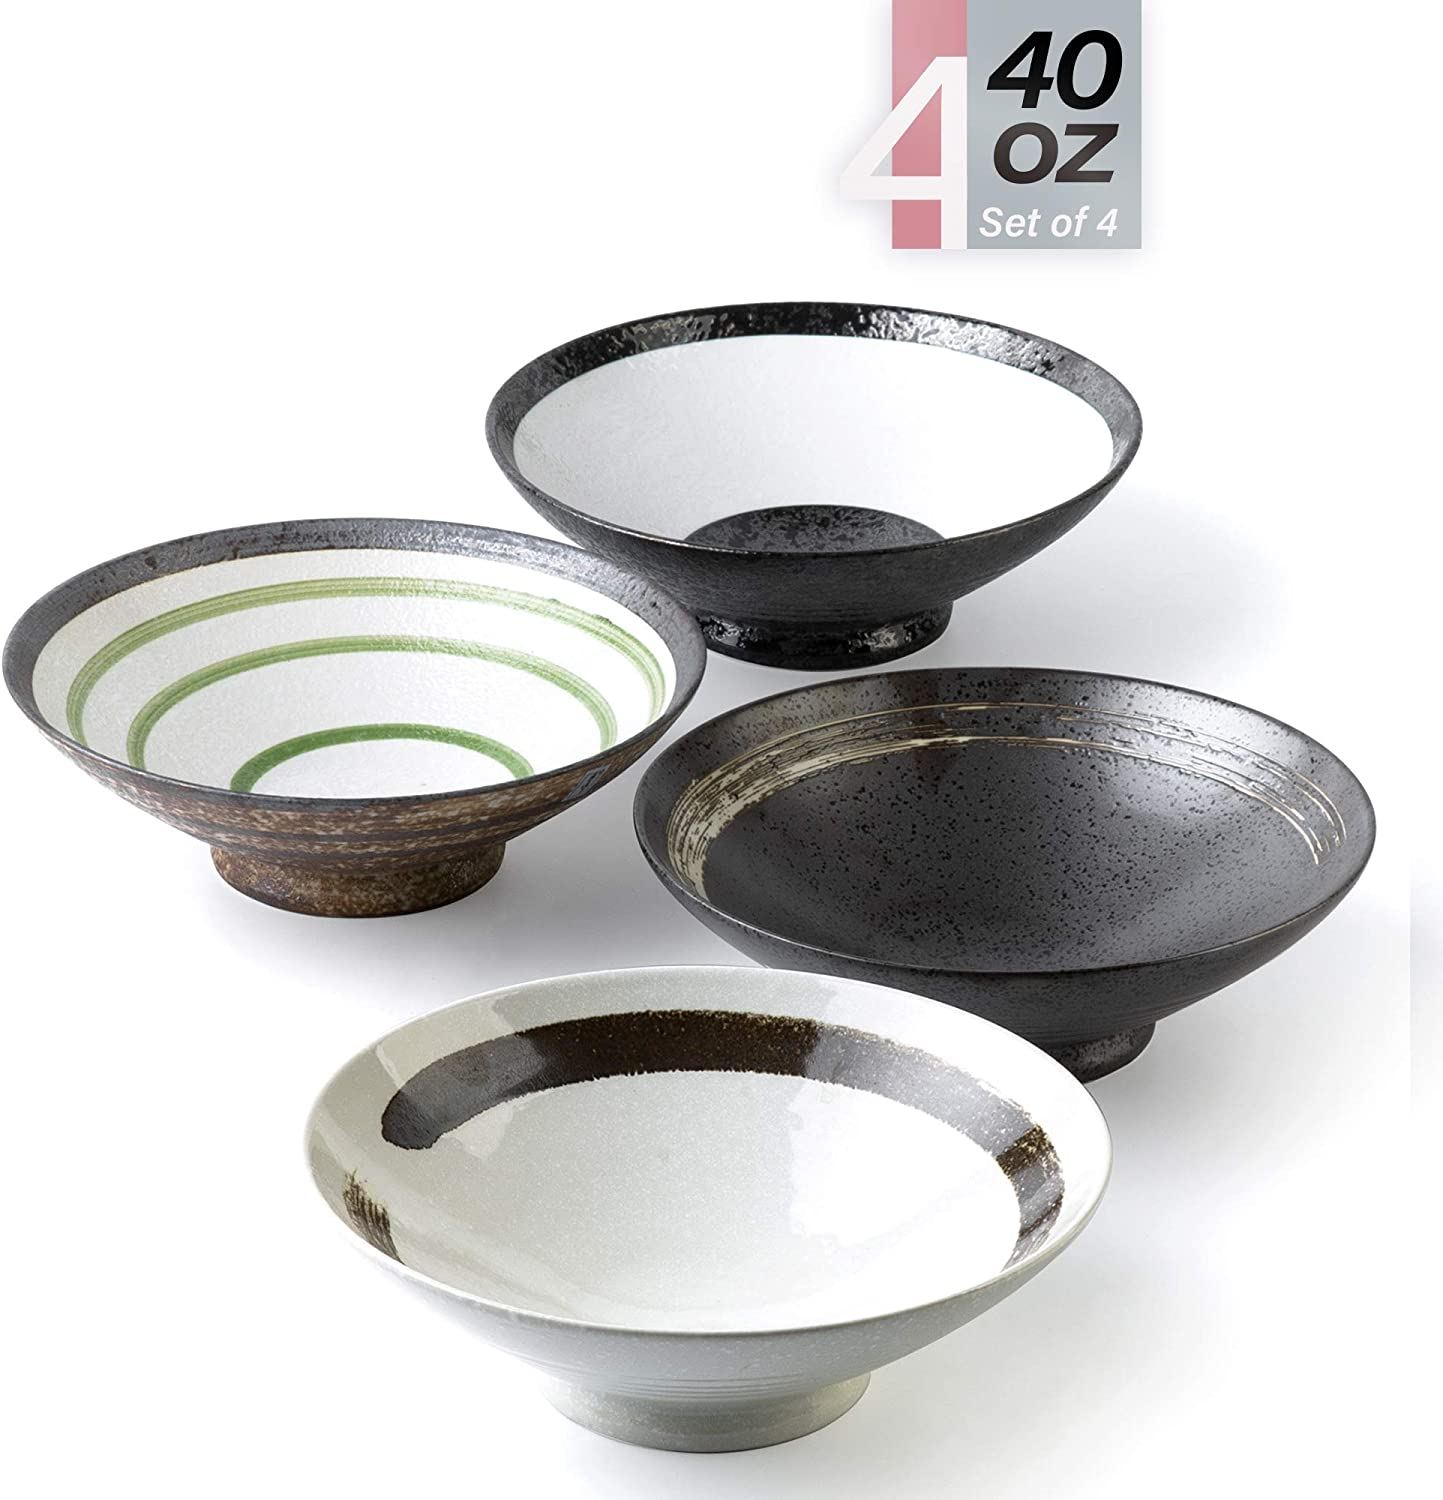 Porcelain Bowls – 40 Ounce Ceramic Large Bowl for Pasta, Cereal, Salad, Soup, Wide and Deep - Set of 4 in Hand Painted Pattern, Microwave and Dishwasher Safe